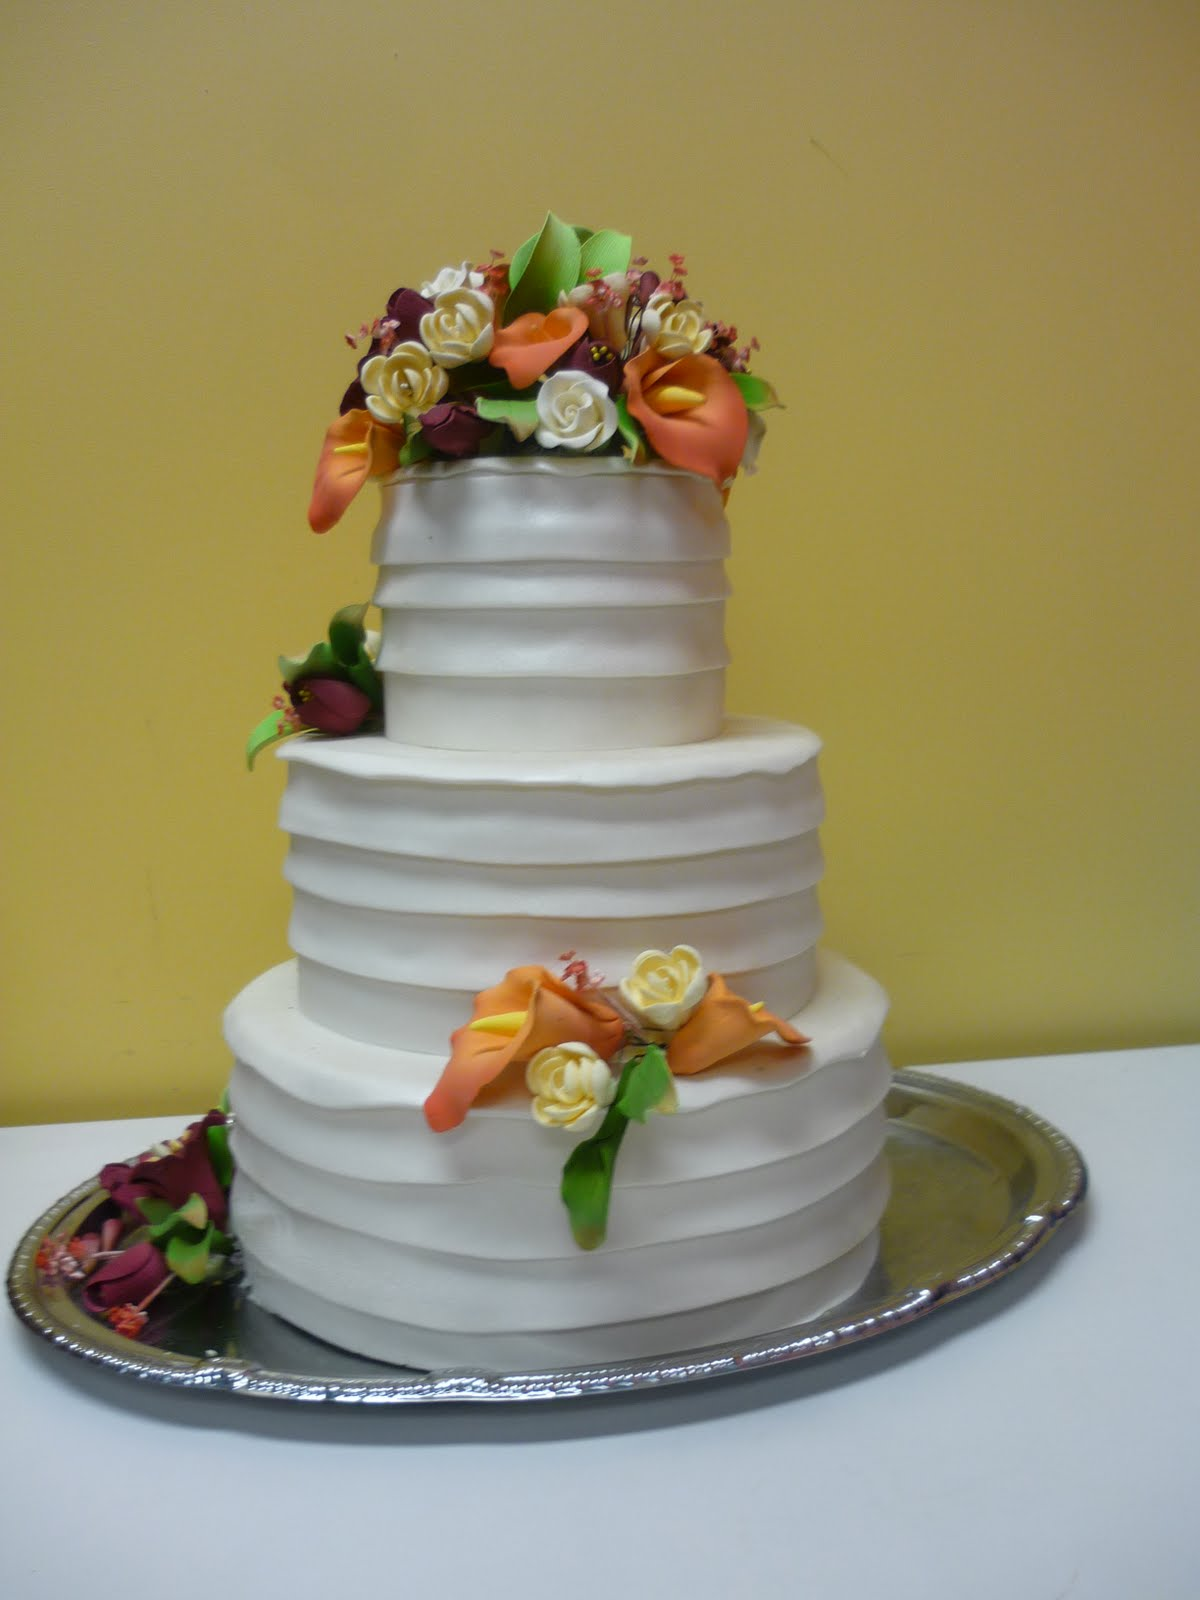 Wedding Cake: Ruched Pleats of